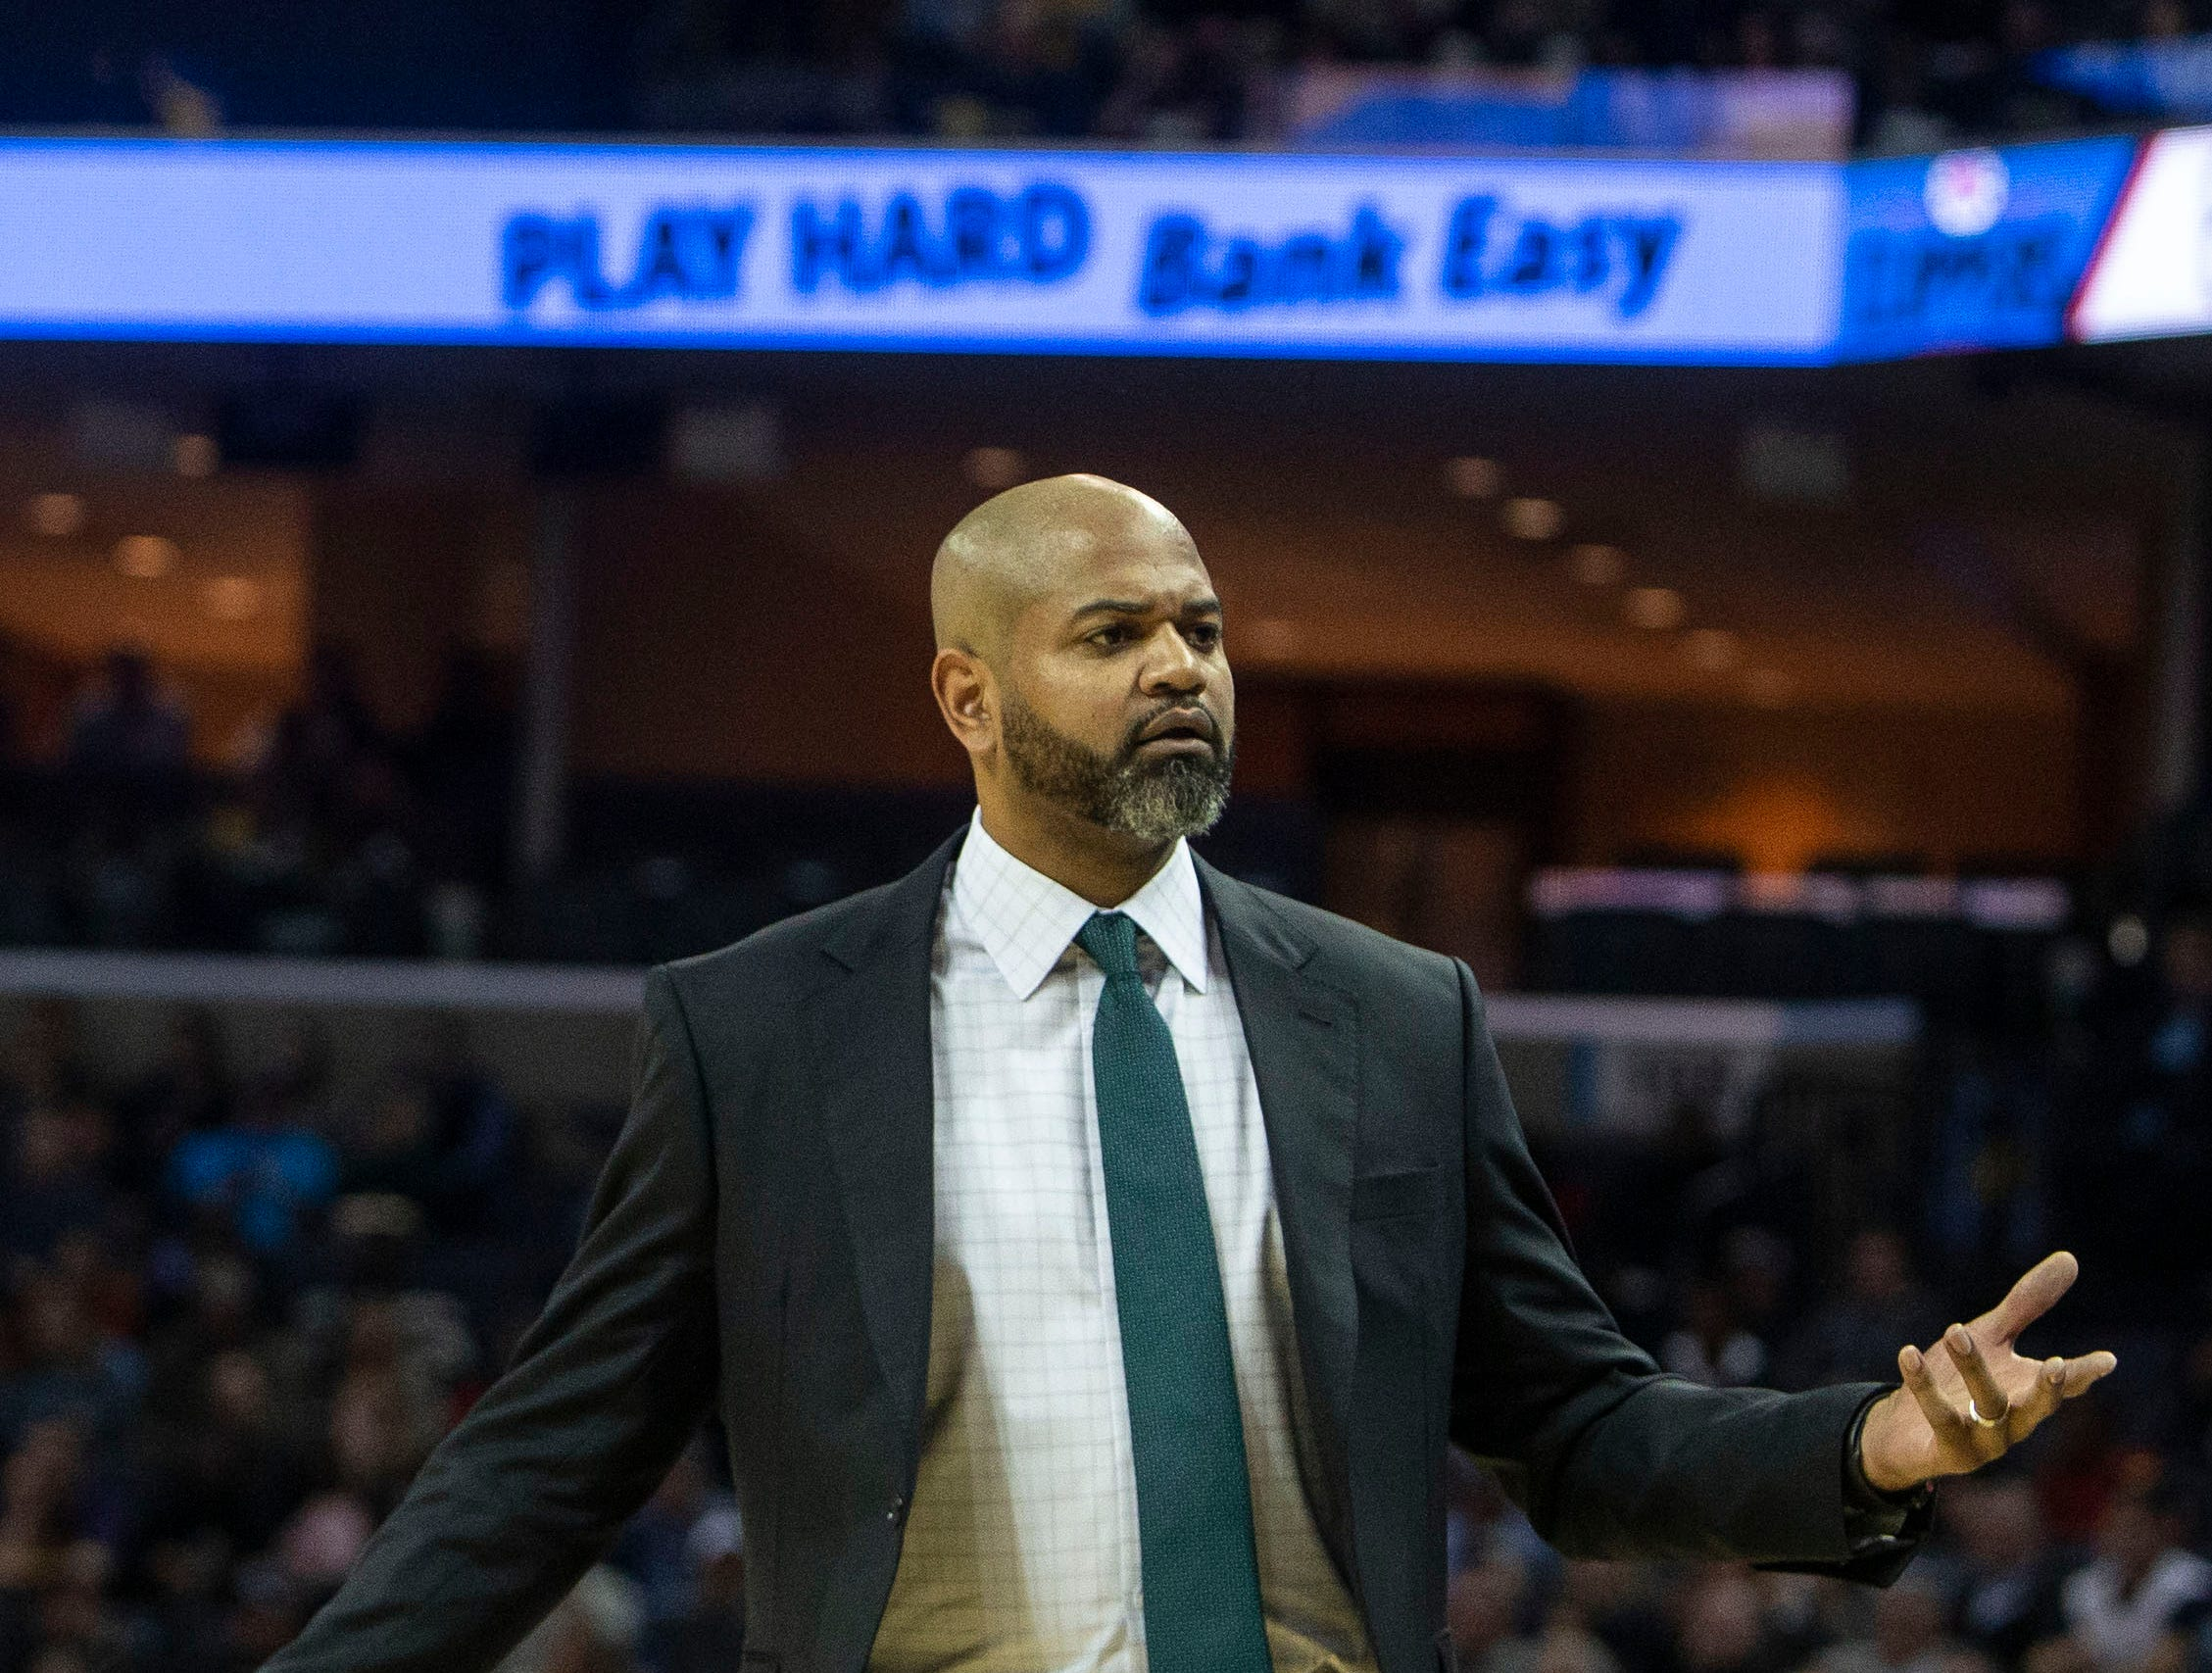 Memphis Grizzles head coach J.B. Bickerstaff, reacts to a call during a NBA basketball game between the Memphis Grizzlies and the  Los Angeles Clippers in the Fedex Forum, Wednesday, Dec. 5, 2018.